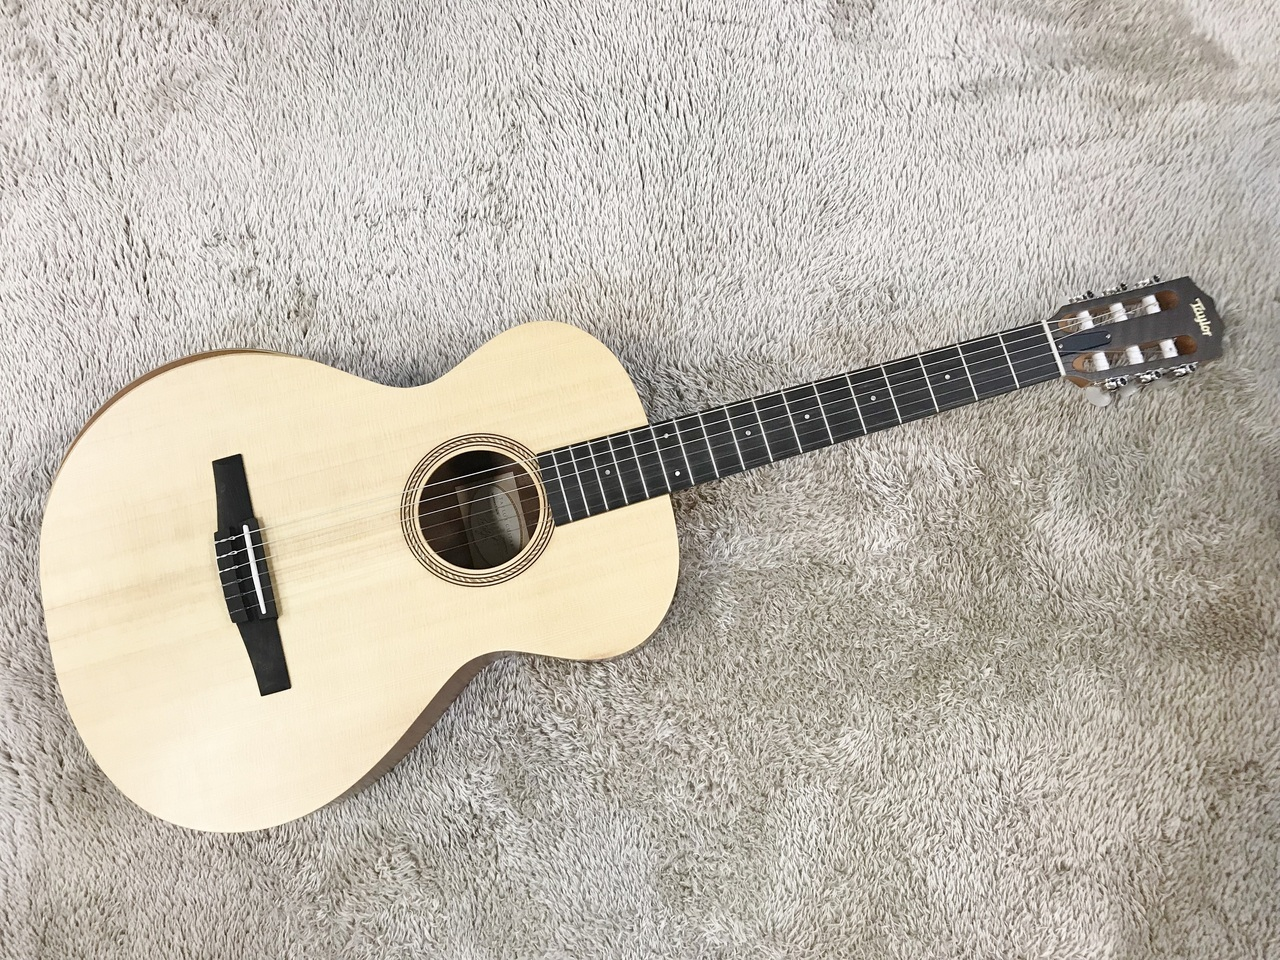 Taylor A12e-N Academy Series [used beauty products] [Made in 2017] [Eregatto]